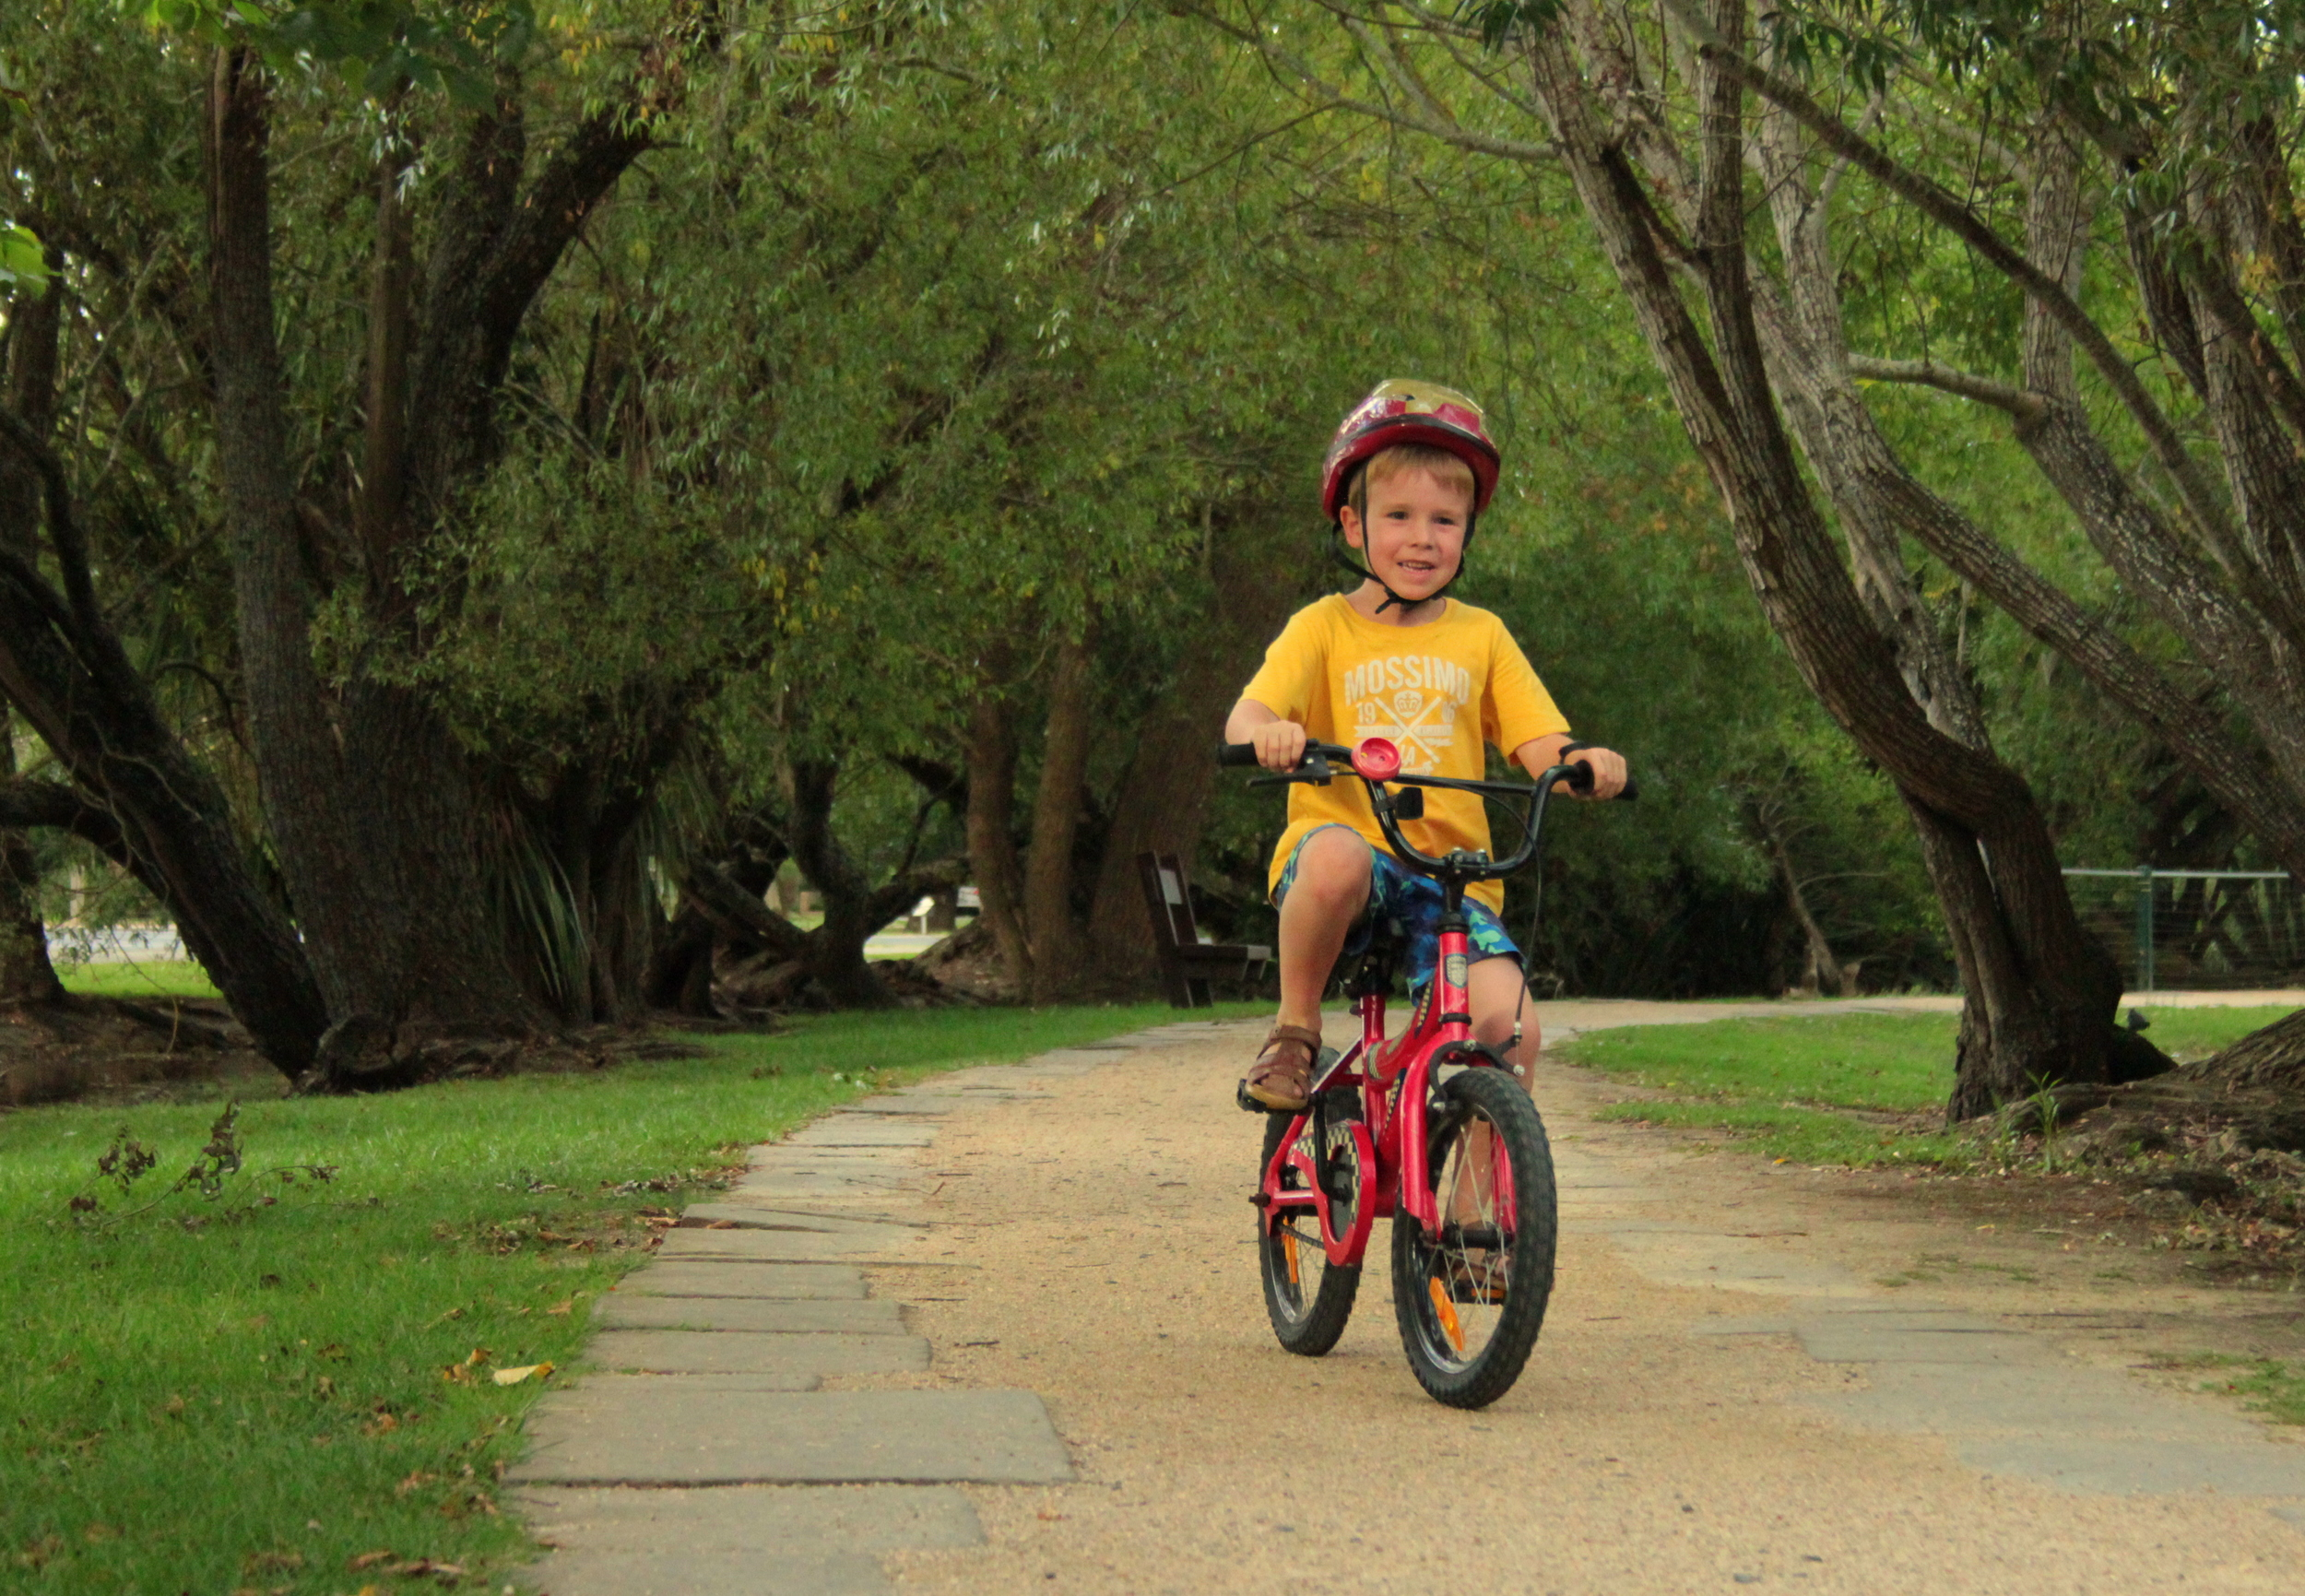 Mr 6 conquered his bike, training wheels free, last weekend so it was time for some practice.